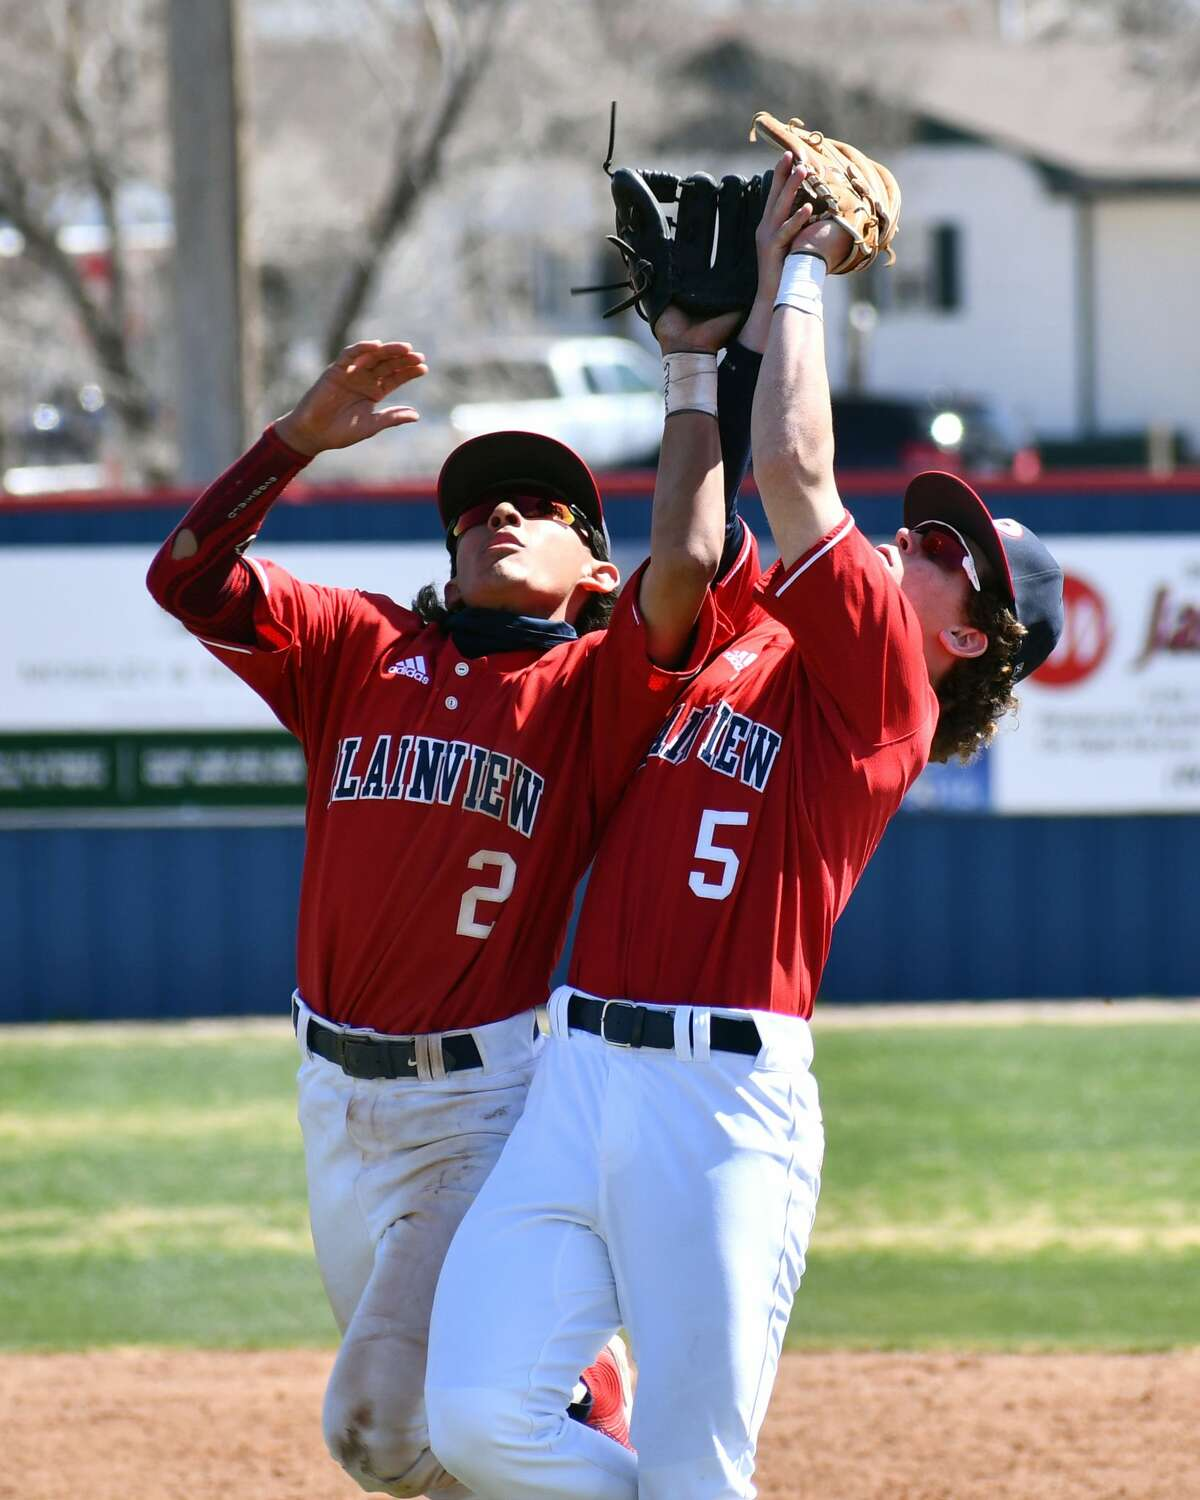 Plainview's Austin Hauk (5) narrowly avoids a collision with teammate Devin Rogers for the game-ending out in a 5-3 victory over Amarillo Tascosa in a District 3-5A baseball game on Saturday at Bulldog Park.